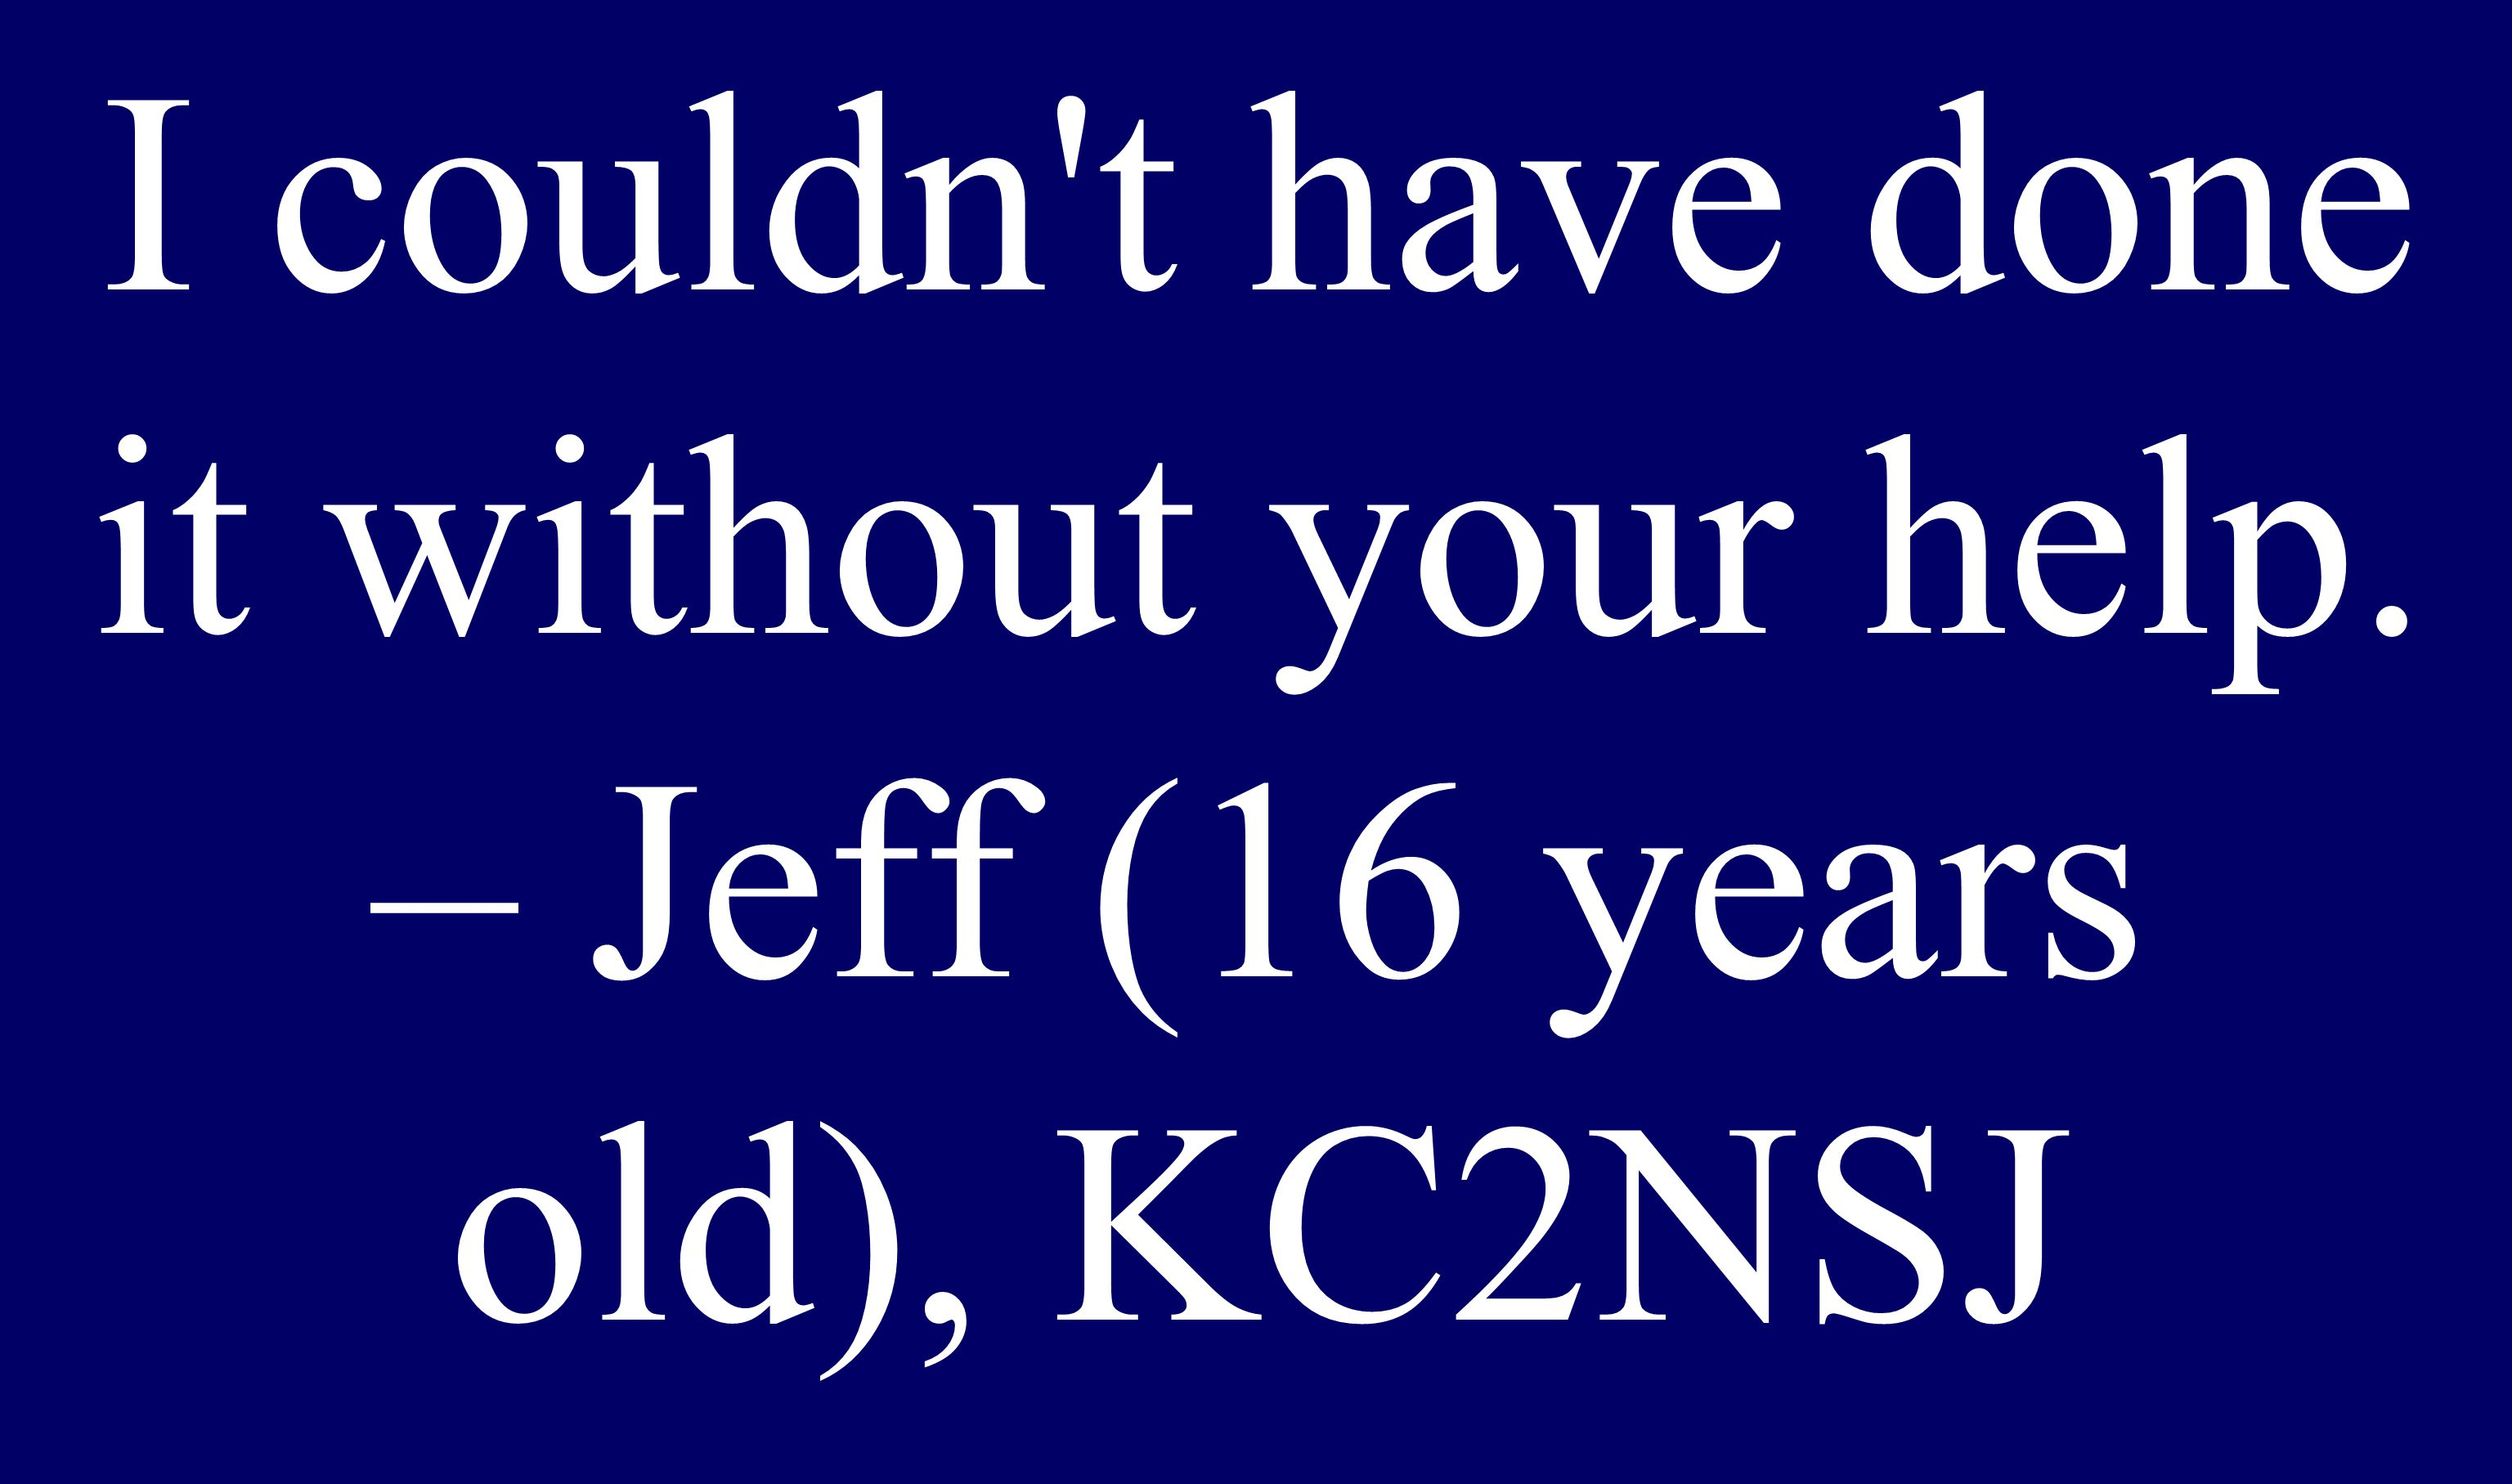 You re never too young... I couldn t have done it without your help. – Jeff (16 years old), KC2NSJ